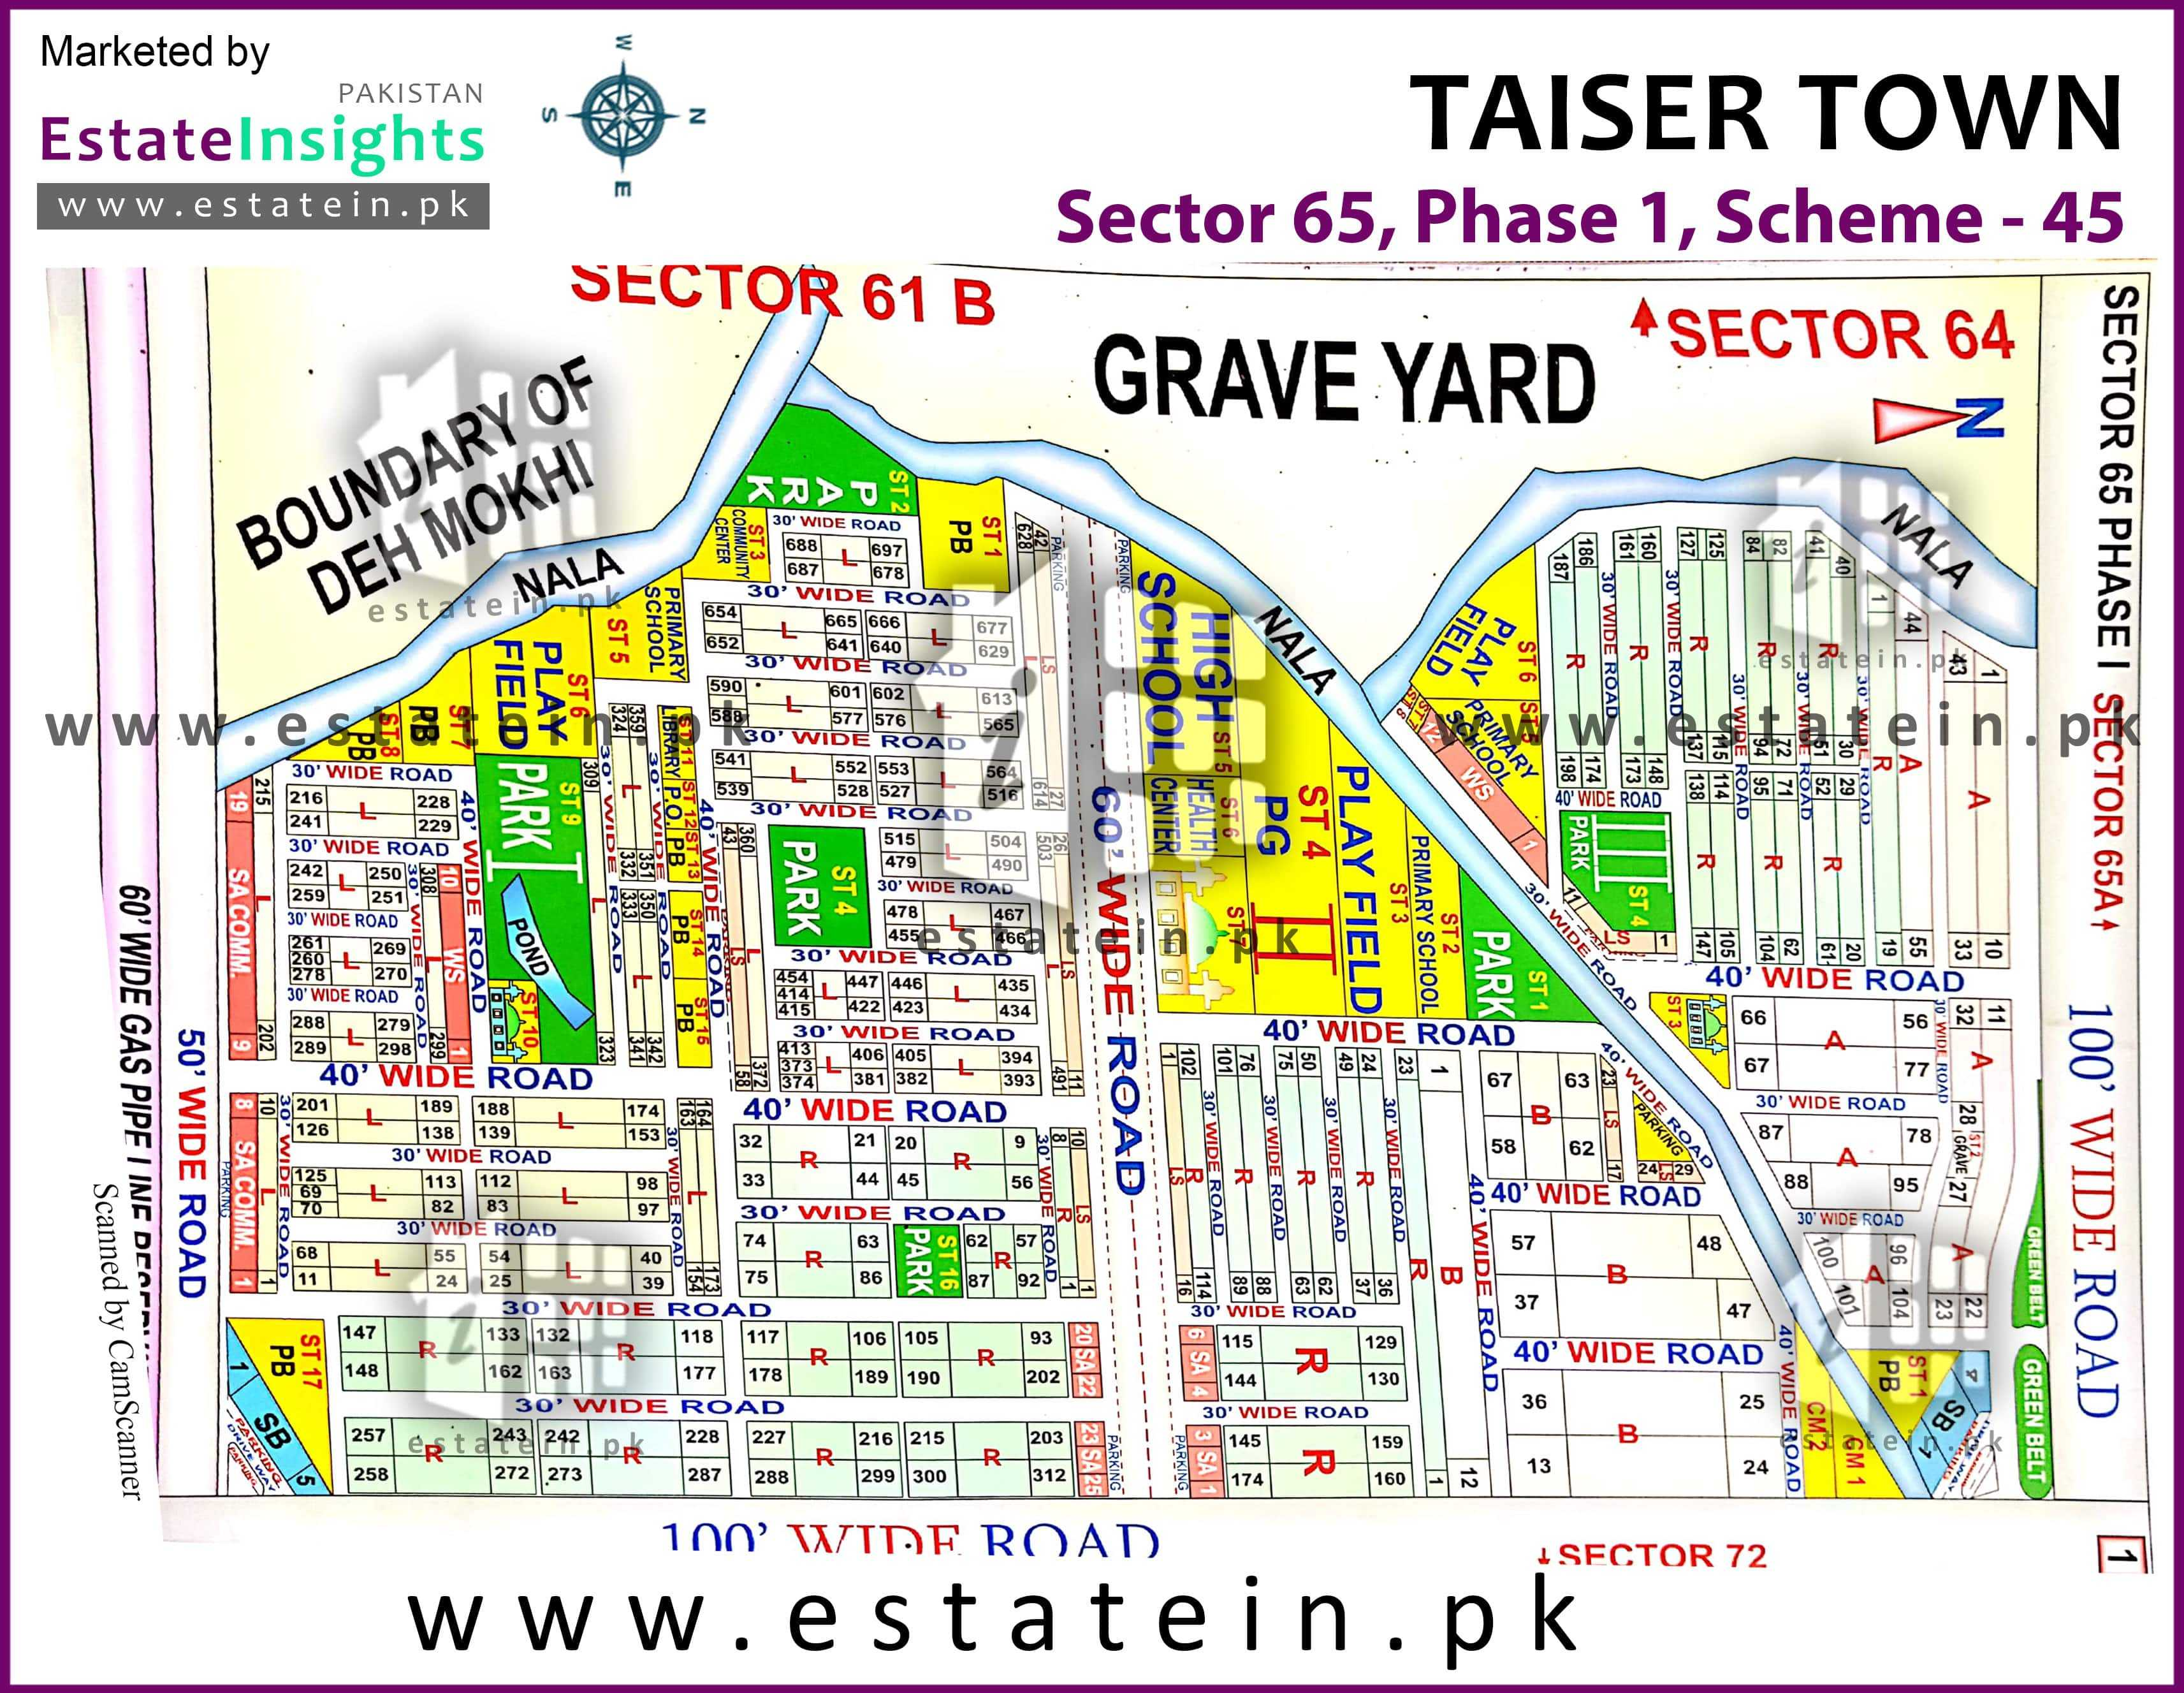 Site Plan of Sector 65 of Taiser Town Phase I